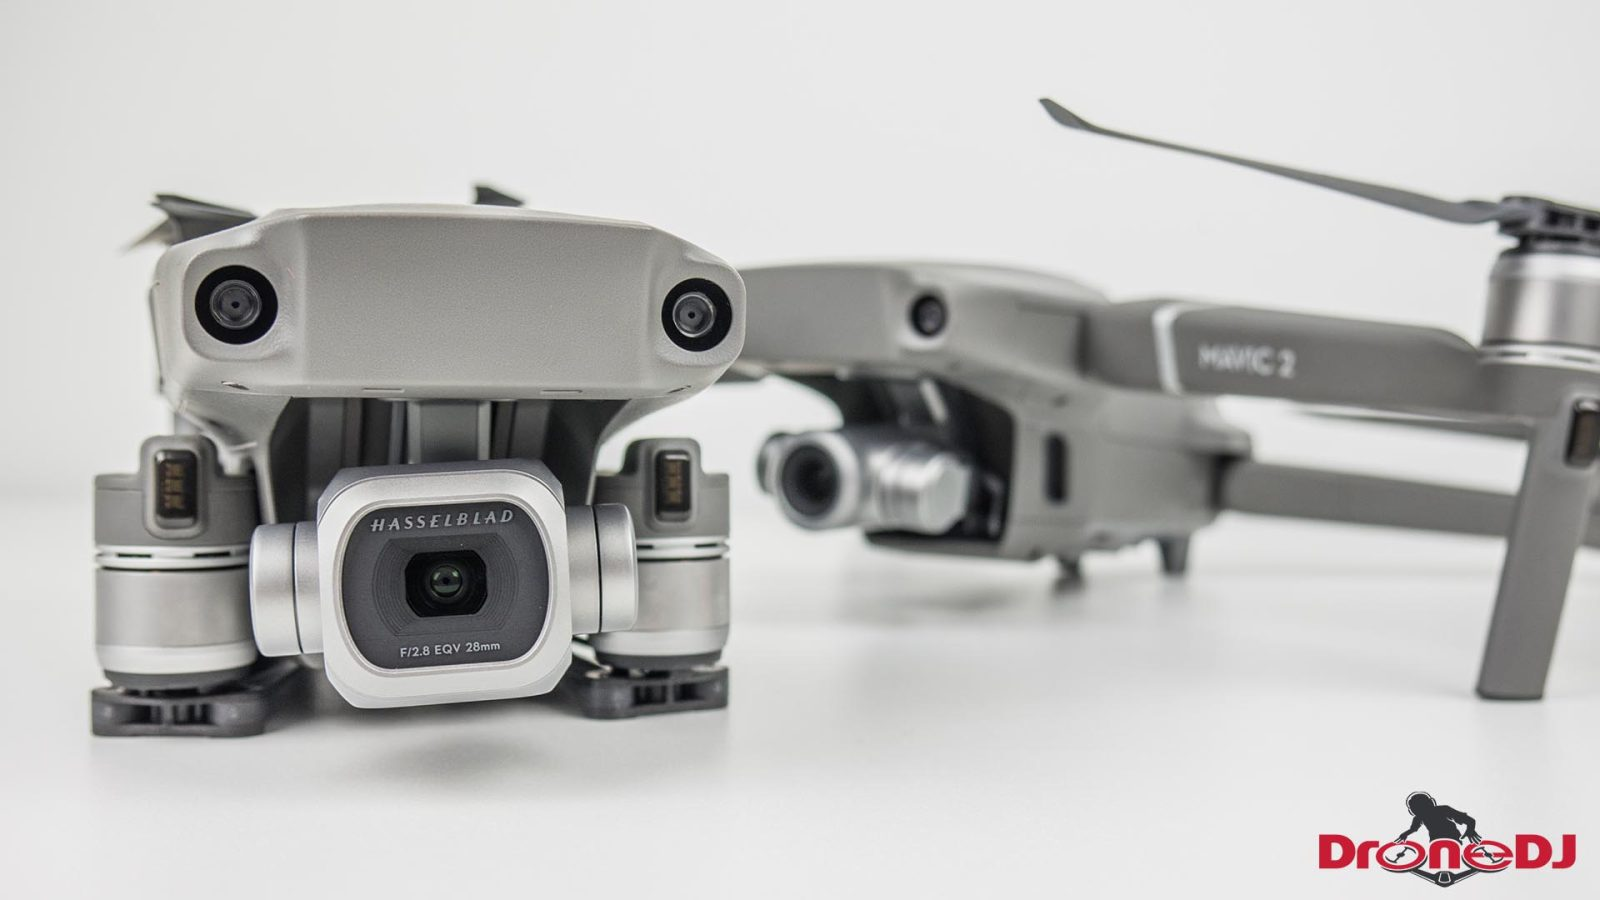 The DJI Mavic 2 Pro & Zoom have a secret camera trick up